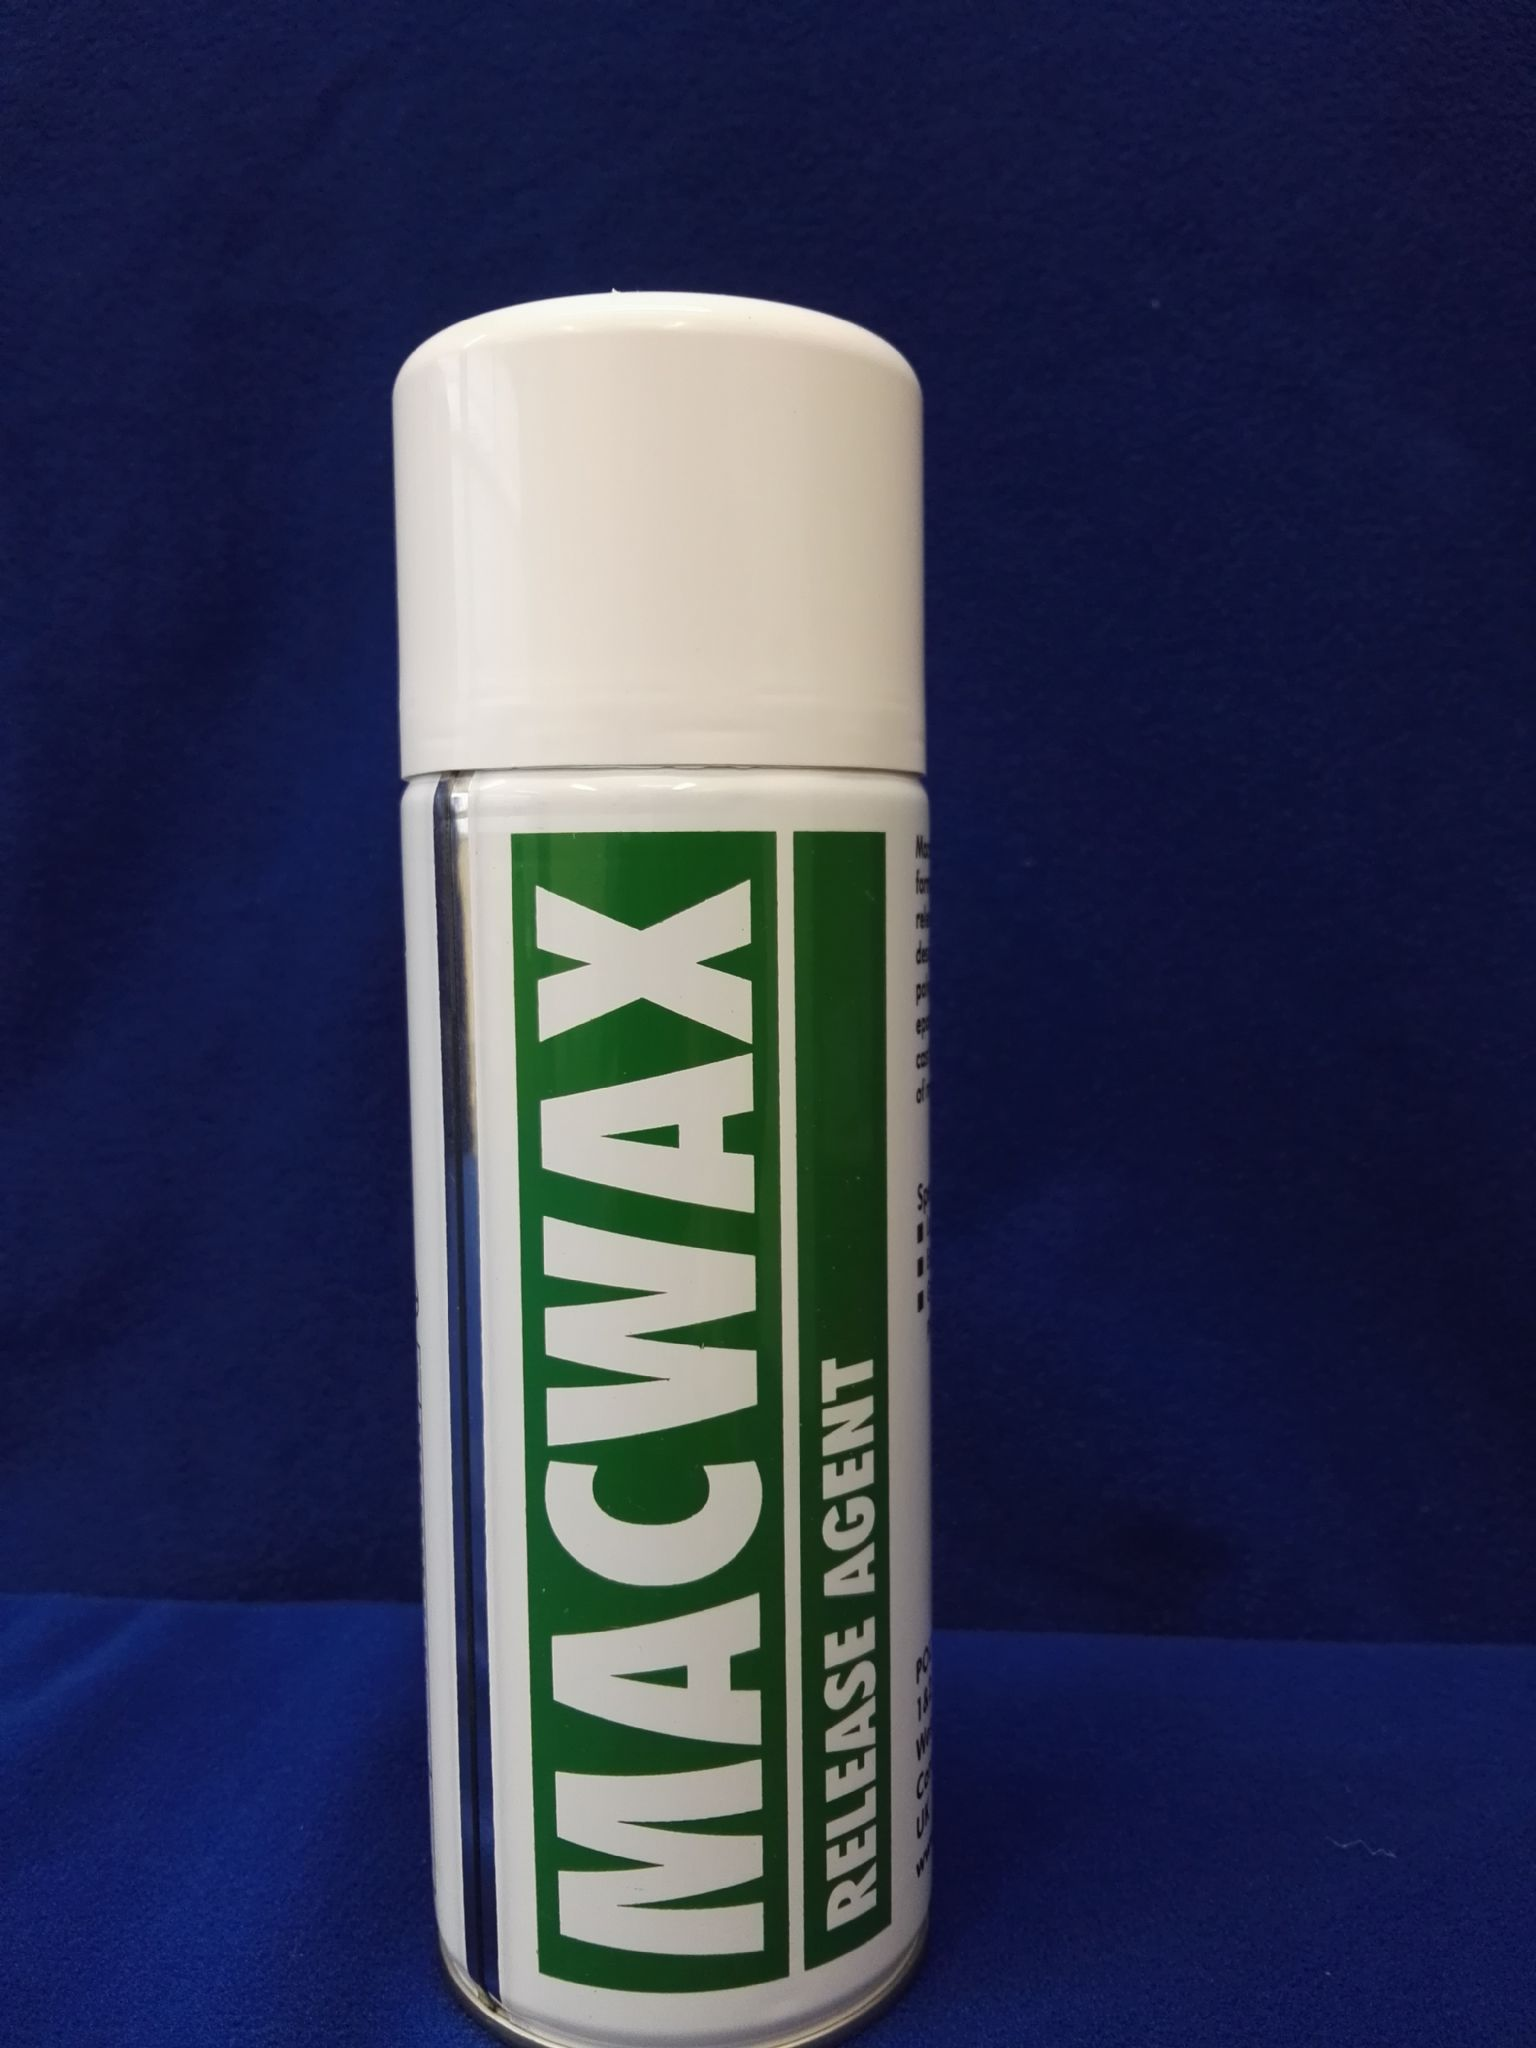 Macwax non-silicone aerosol release agent 400ml Wax Based